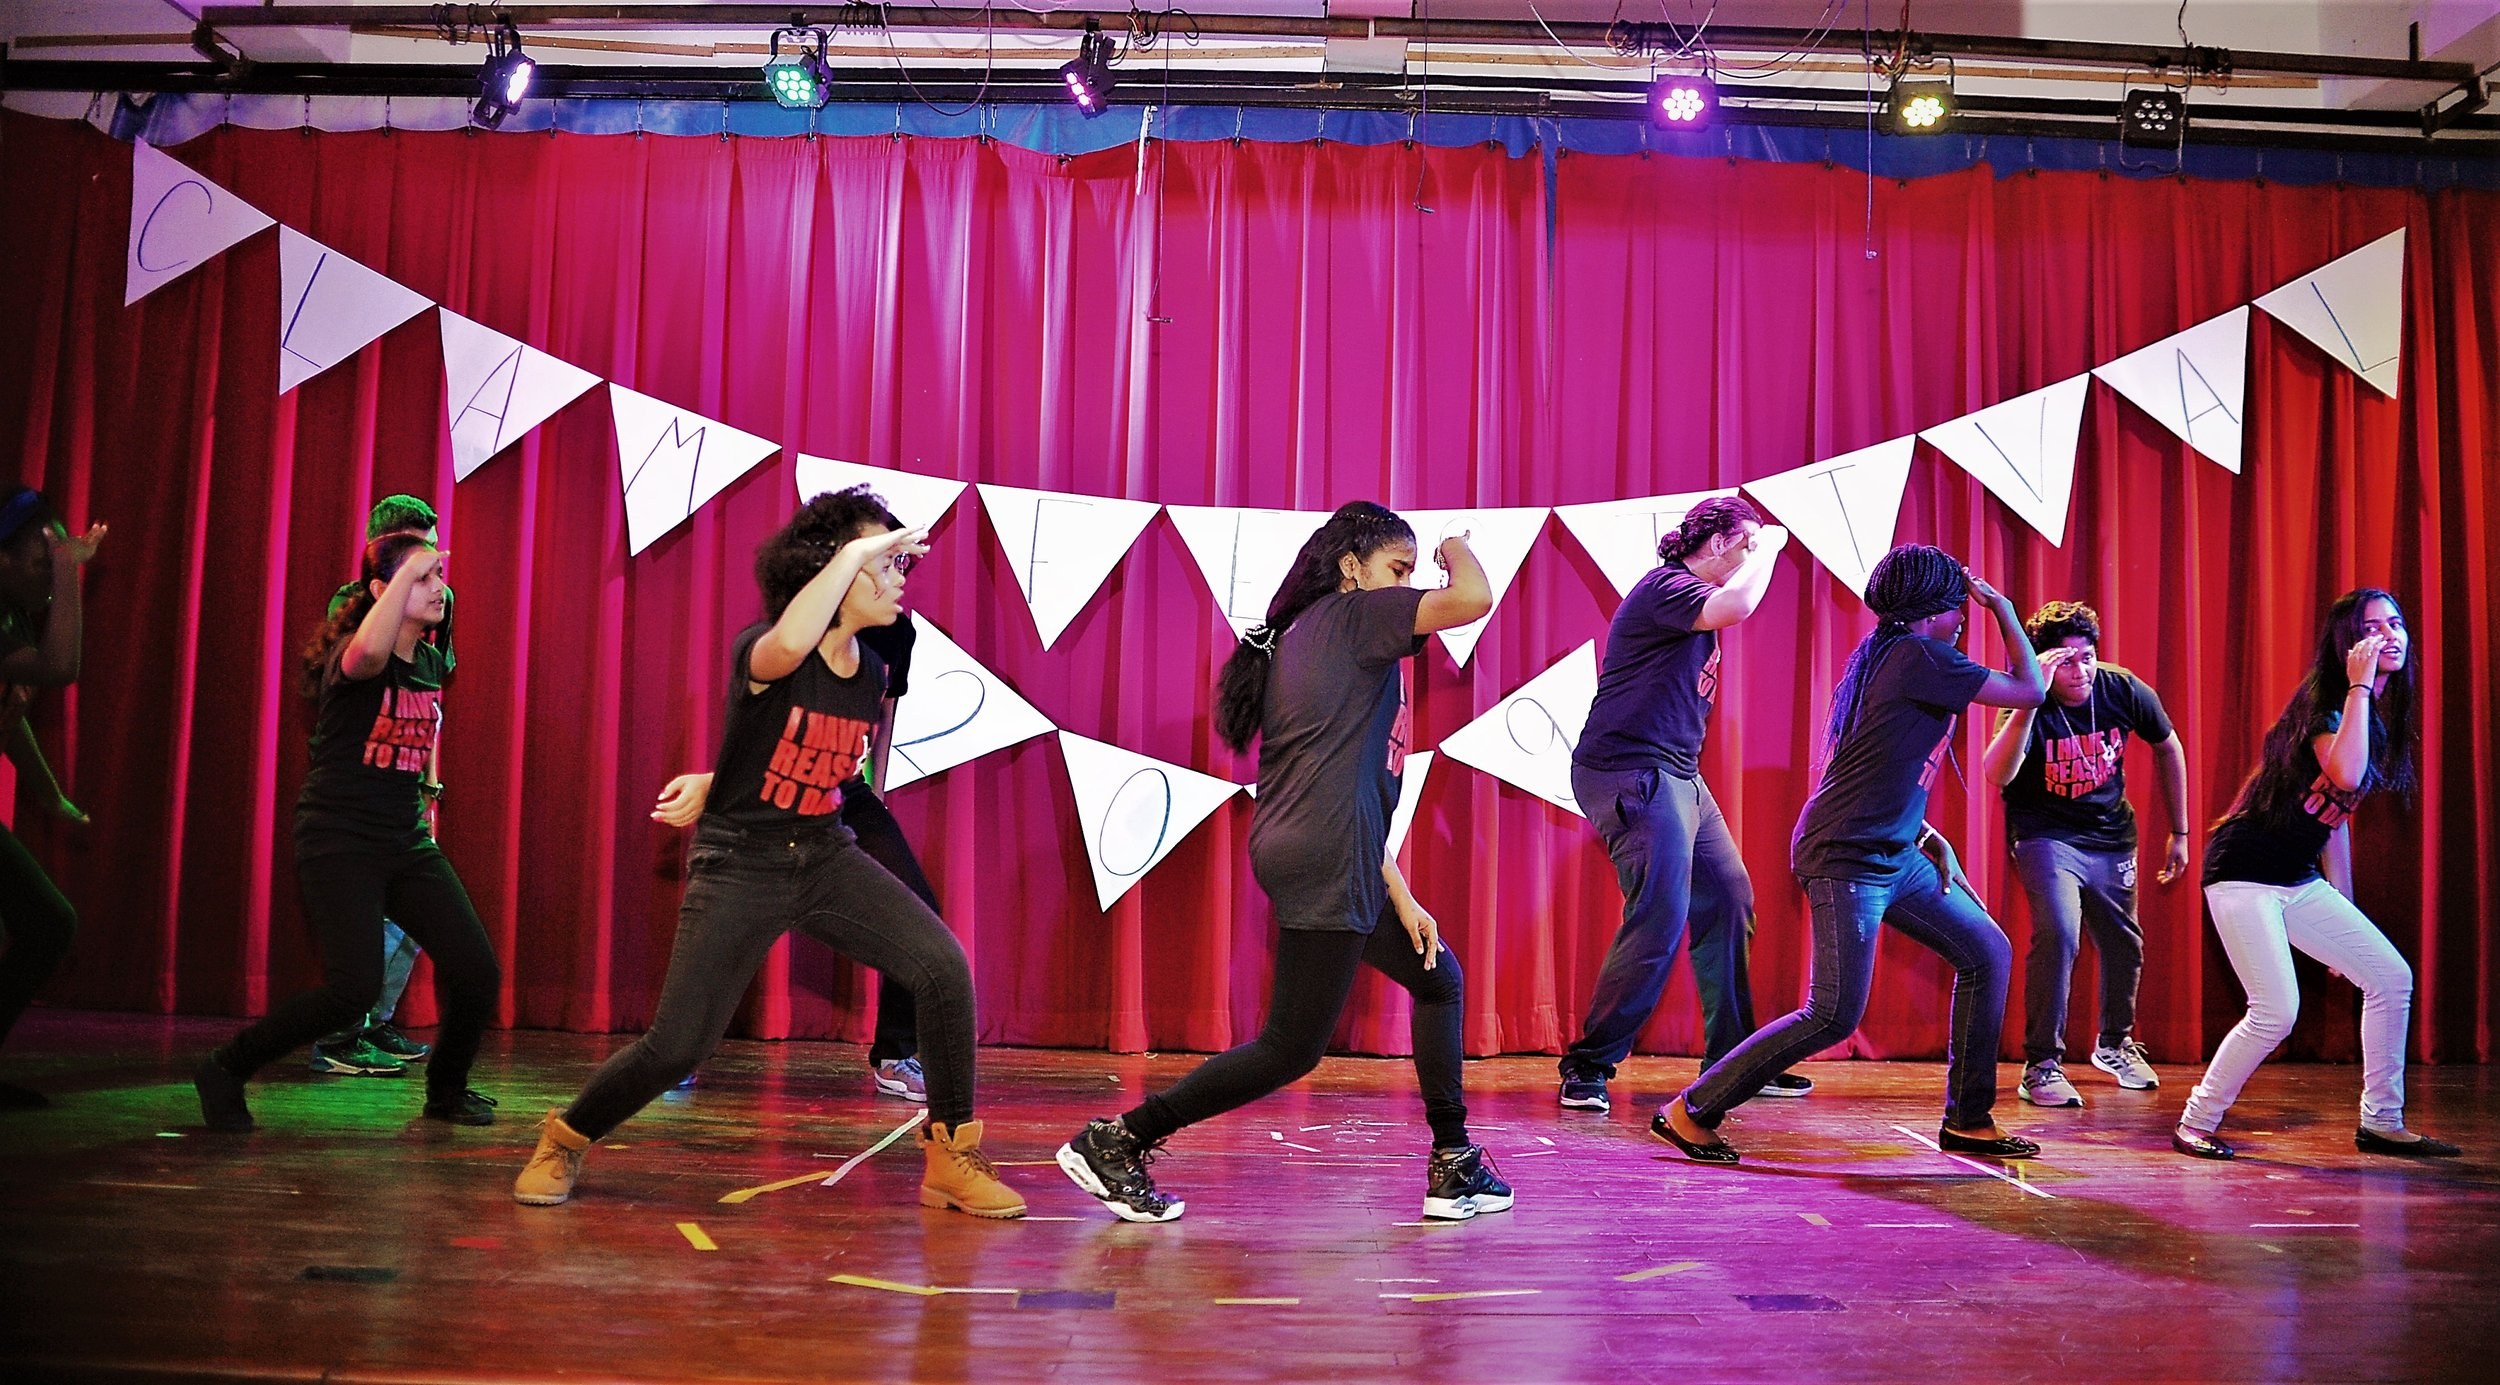 This diverse group of Senior School students joined forces to WOW us with their hip-hop moves!!